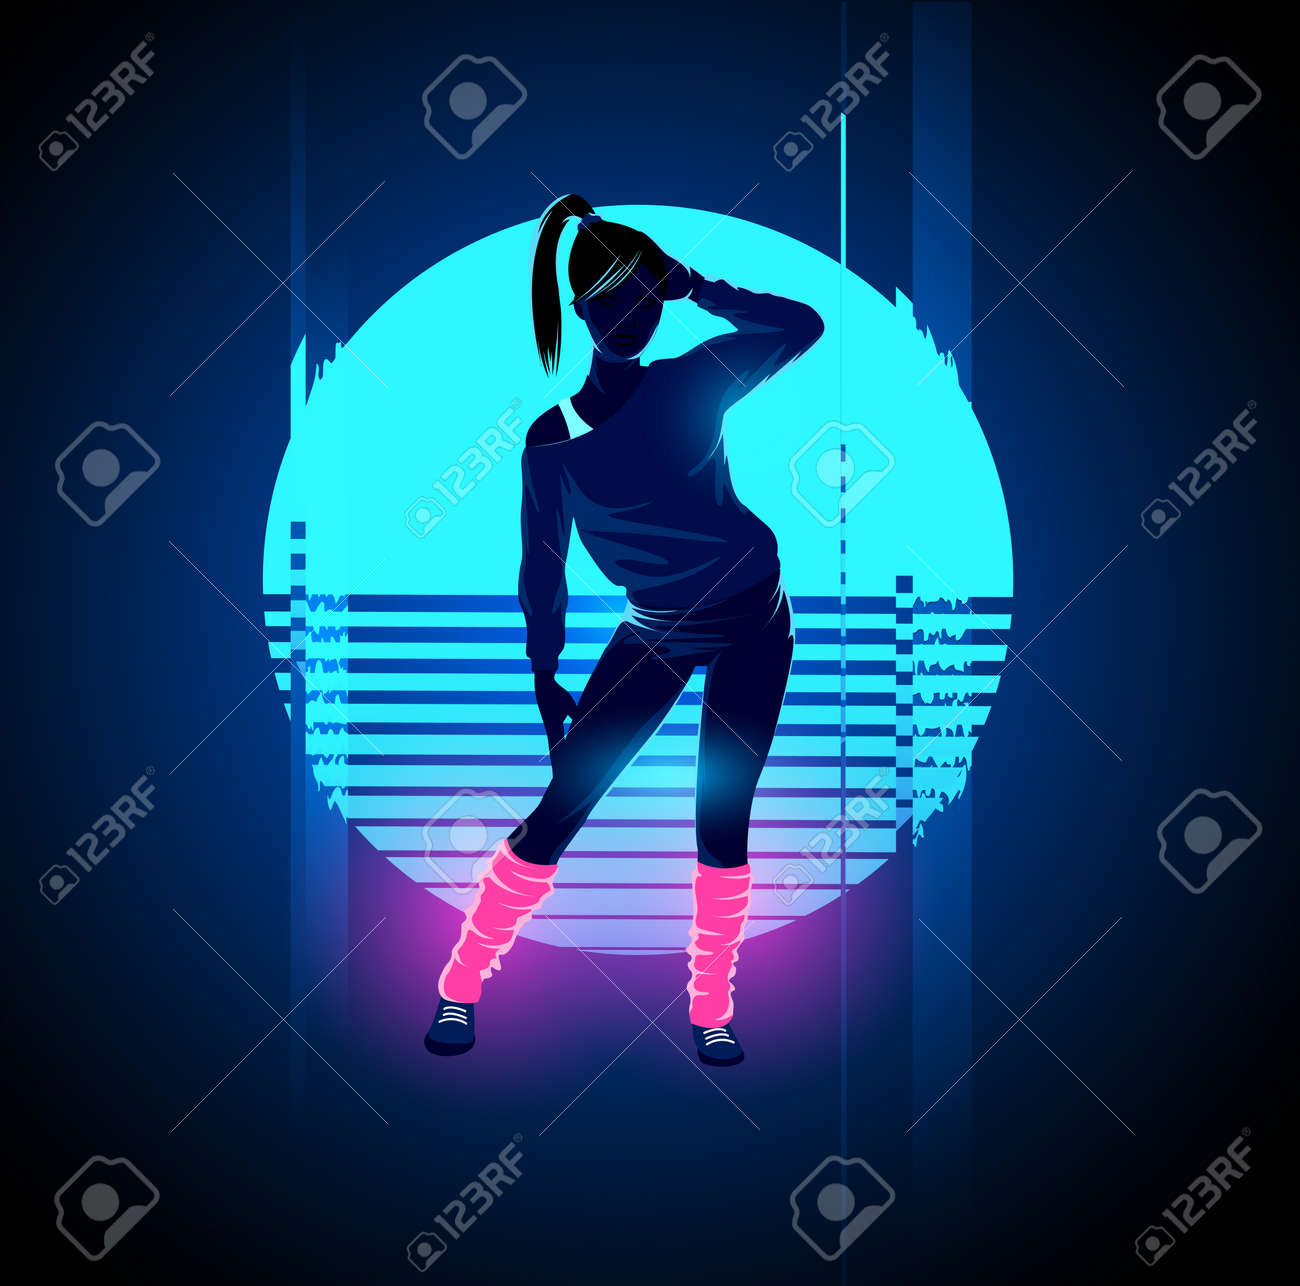 Retro 1980's glowing neon dancing lady with glitch sunset background. Vector illustration Standard-Bild - 72483231